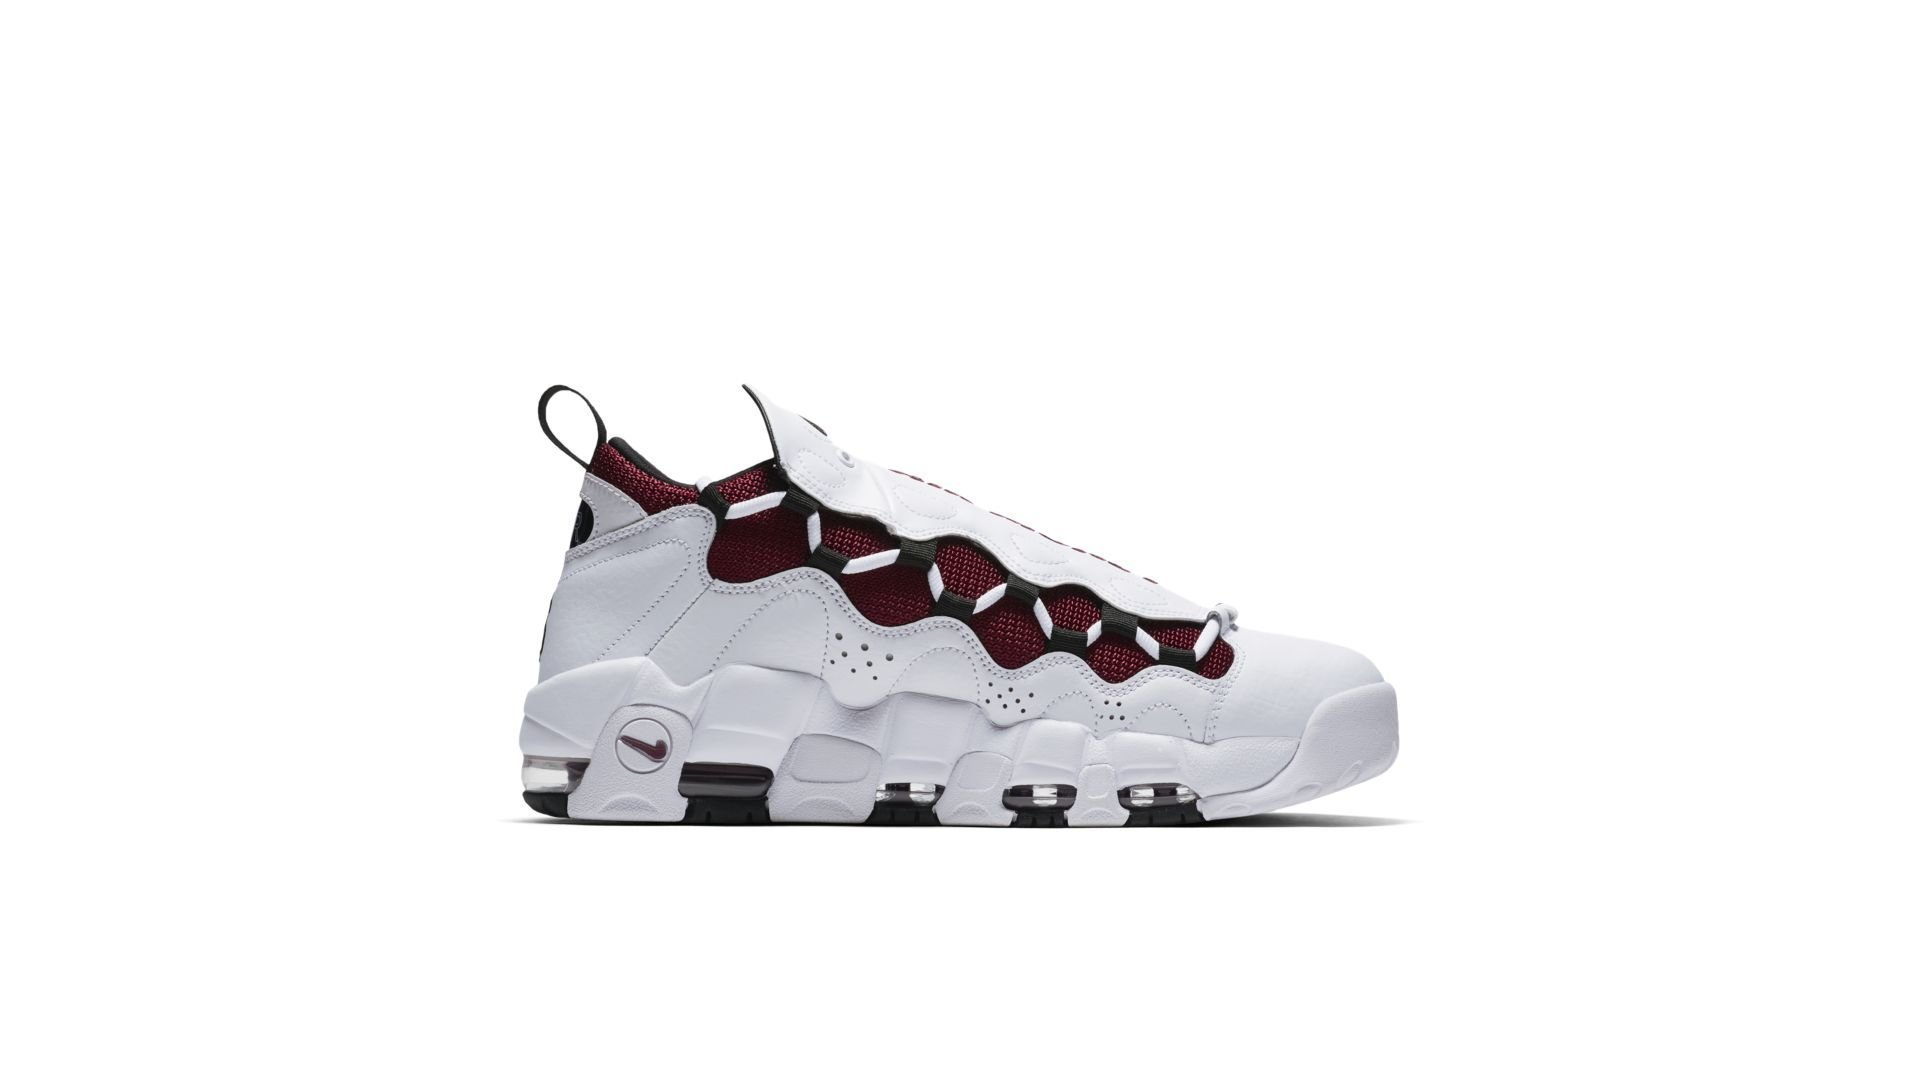 Nike Air More Money White Black Team Red (AJ2998-100)